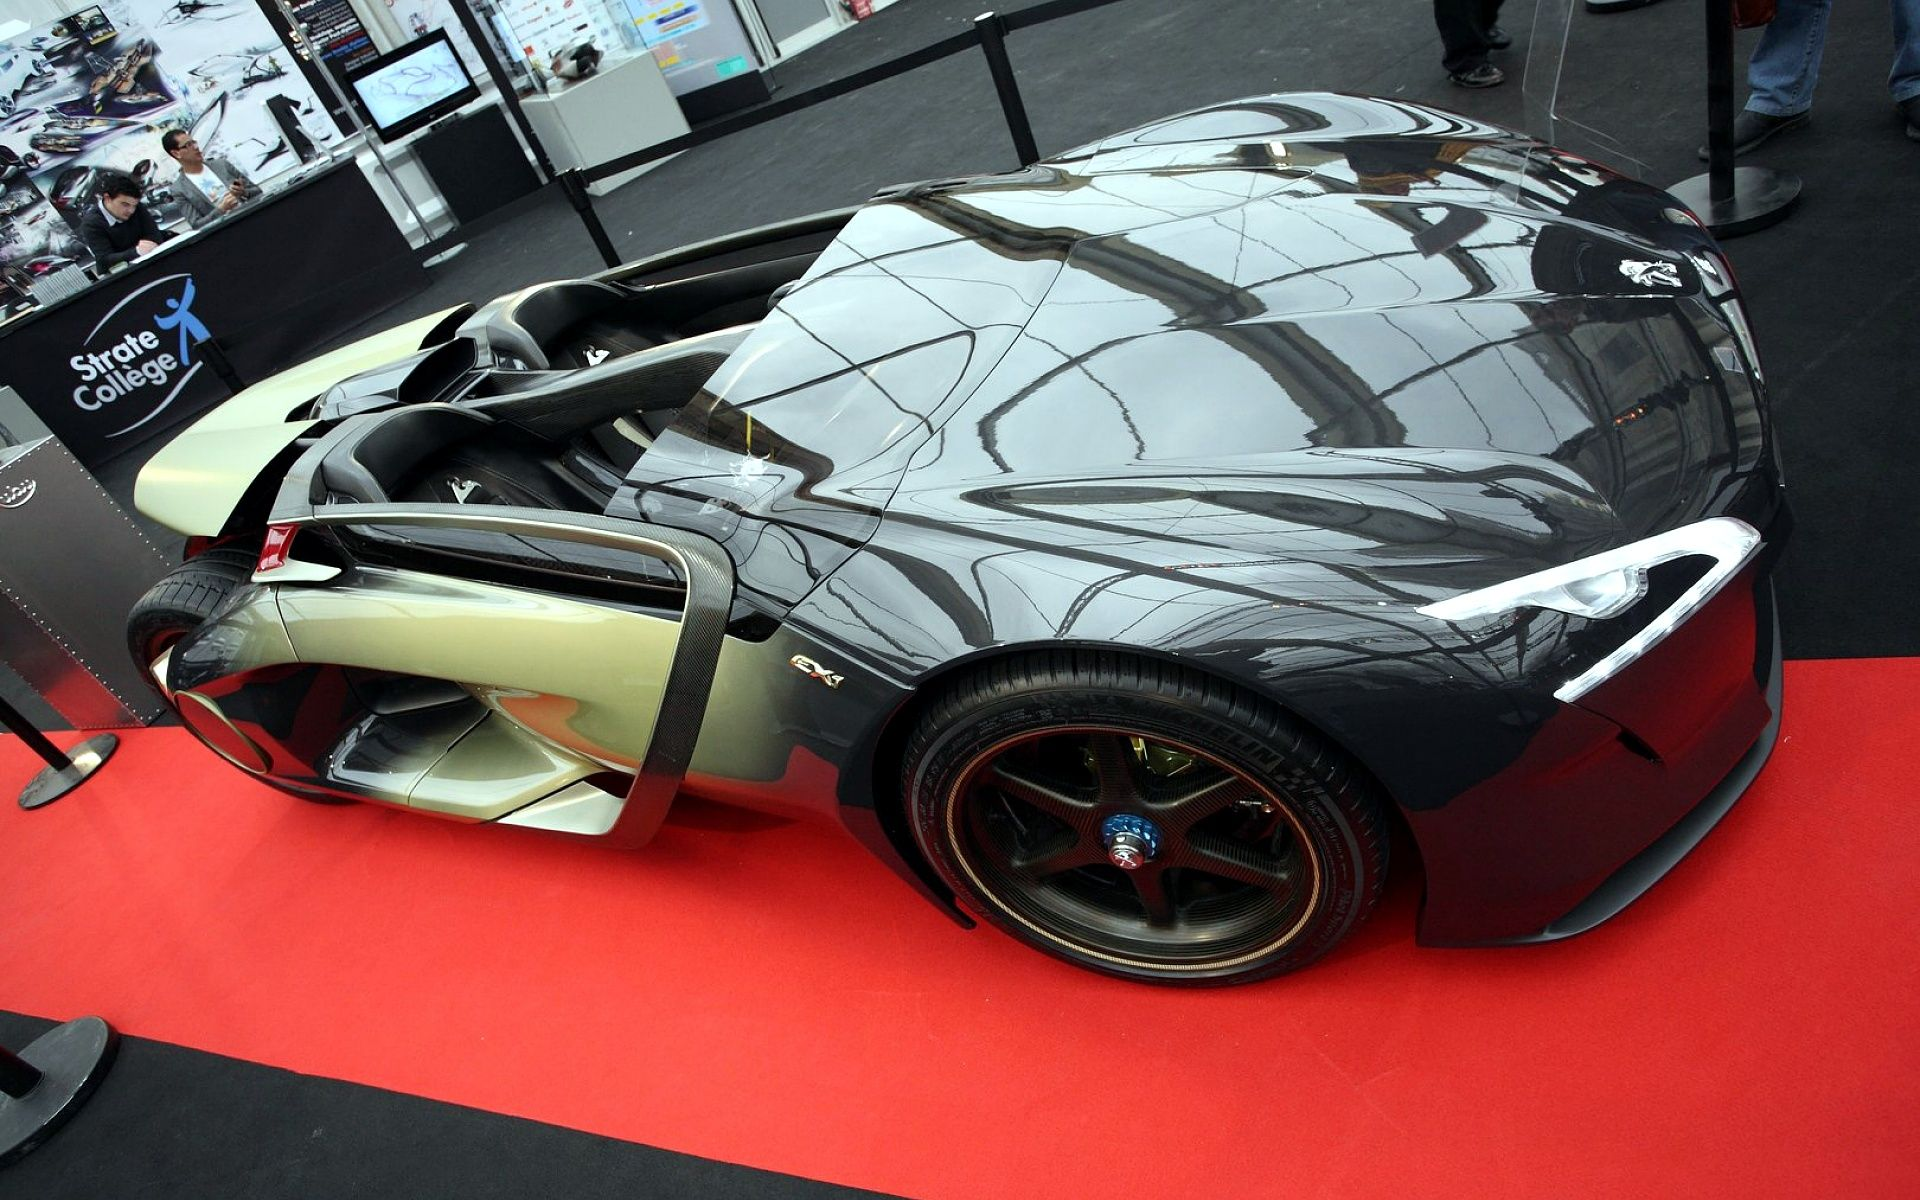 Peugeot EX1 Concept #peugeotex1 #wallpapers Www.yours Cars.eu